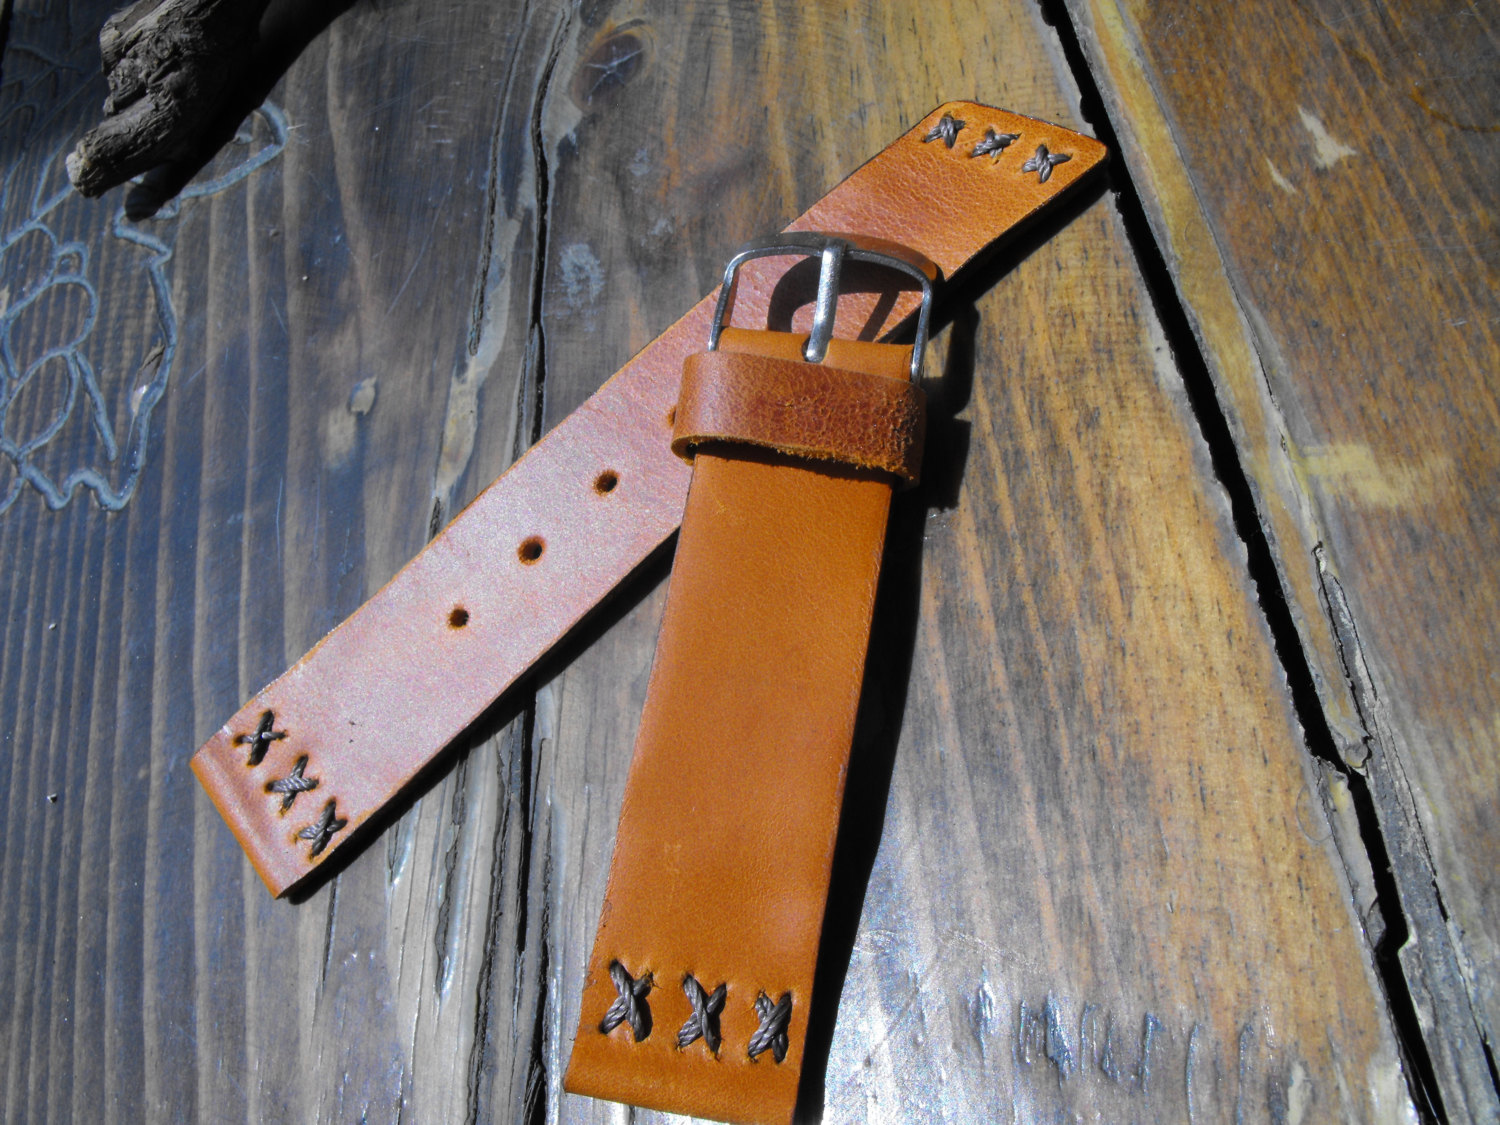 Primary image for Pam Leather Band, Italian Leather, Uhrenarmband, Retro Watch strap, Panerai Men